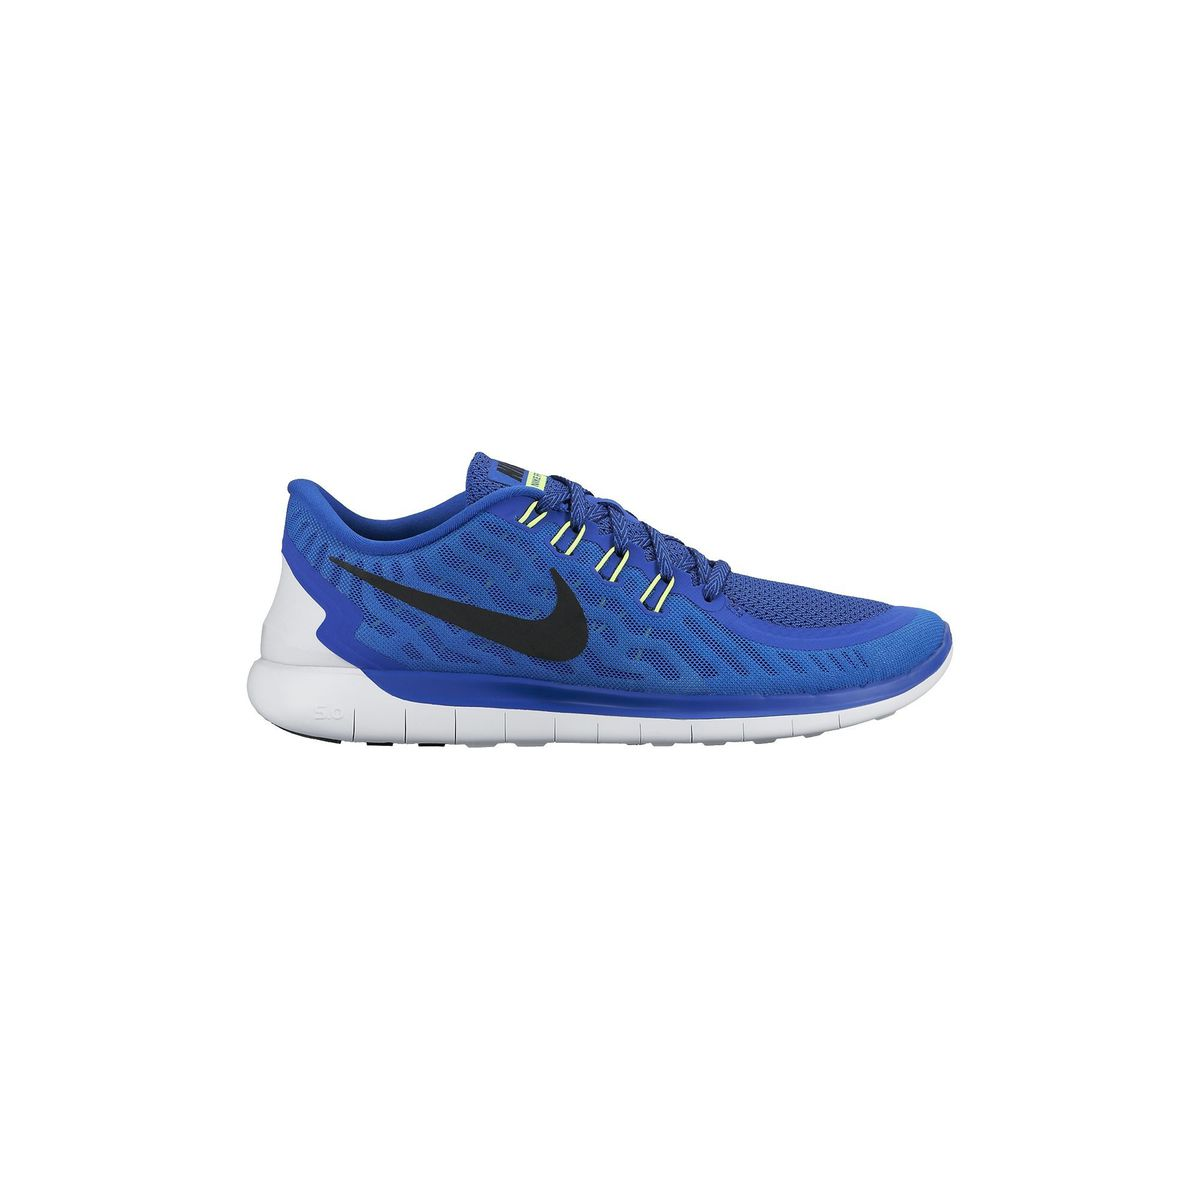 info for ed6a4 5261d ... canada mens nike free 5.0 running shoe 10714 e40a9